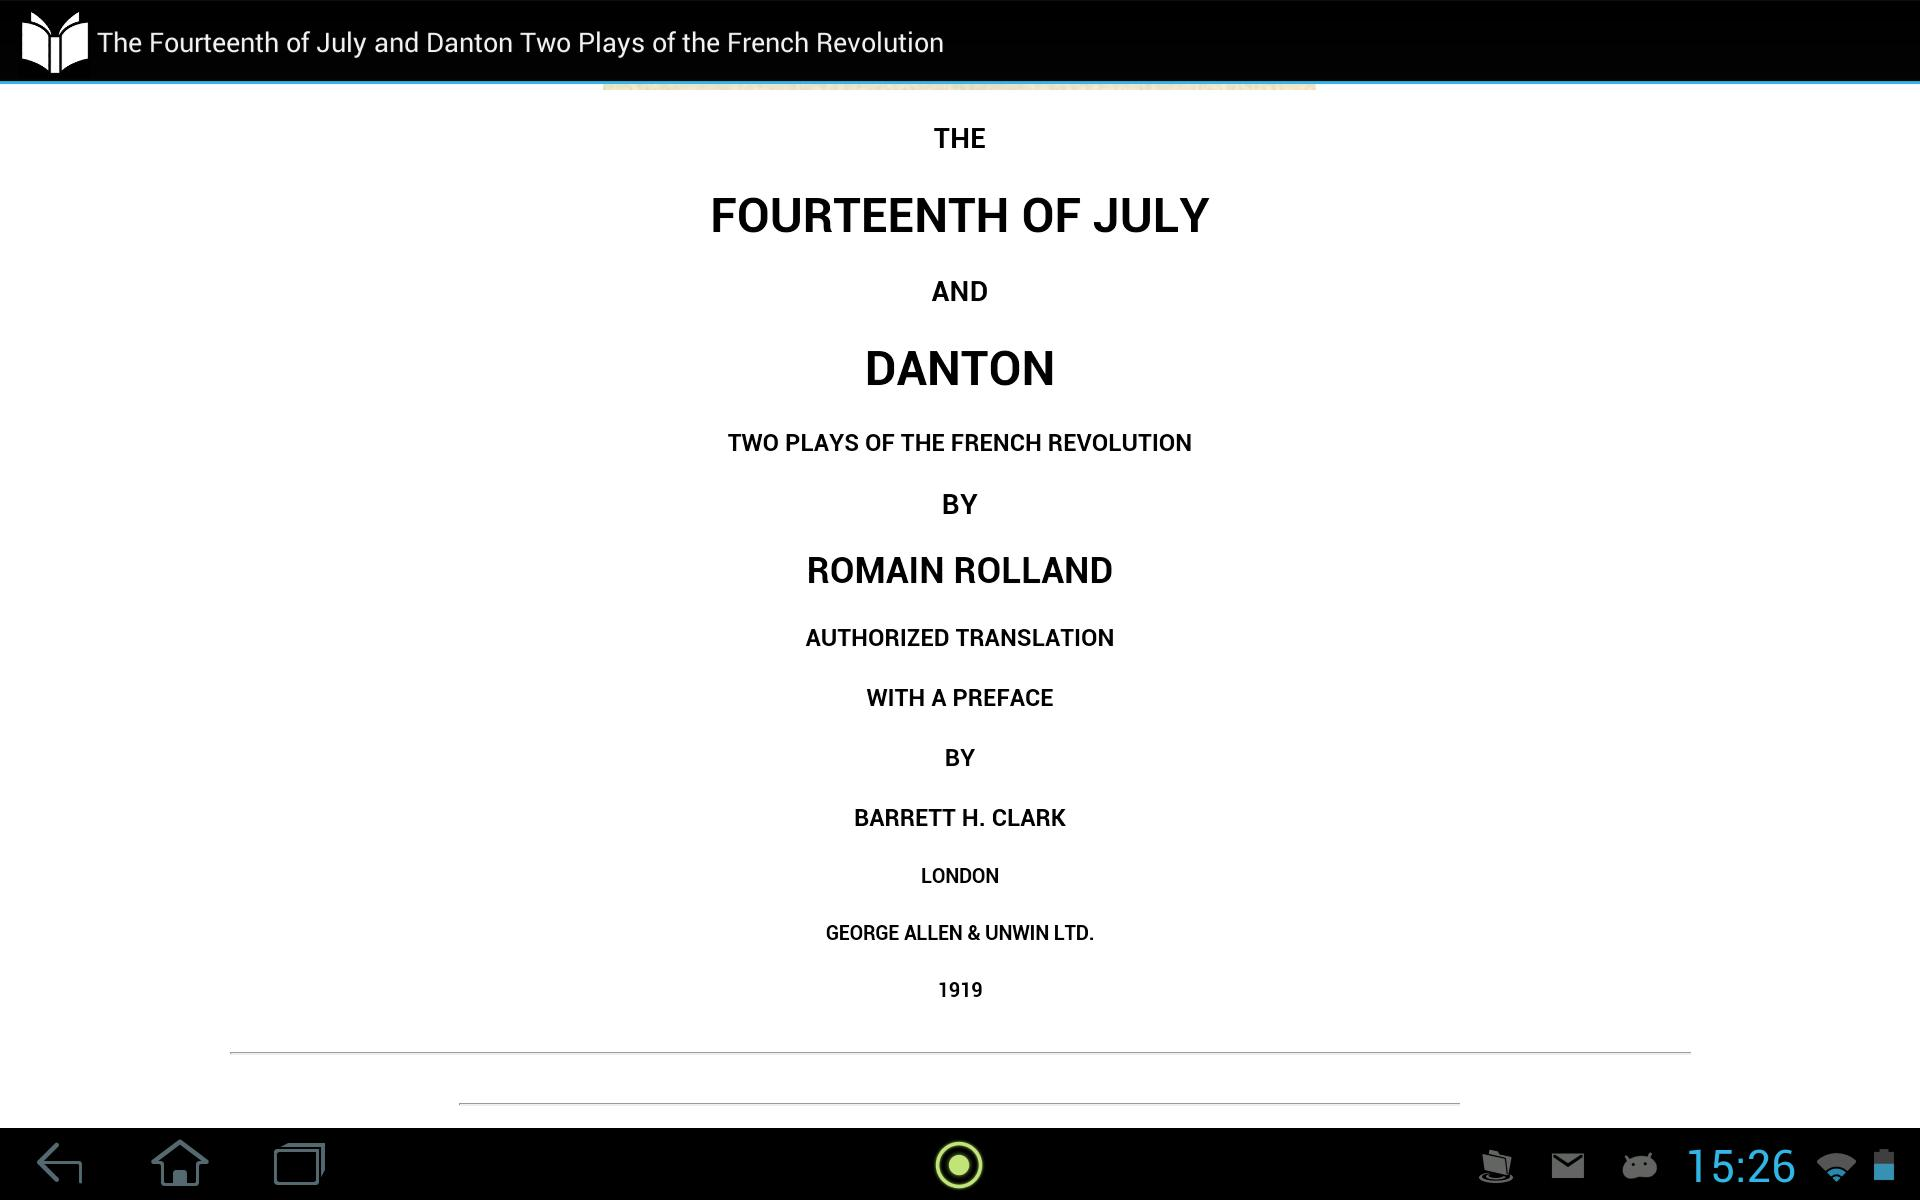 Fourteenth of July and Danton poster